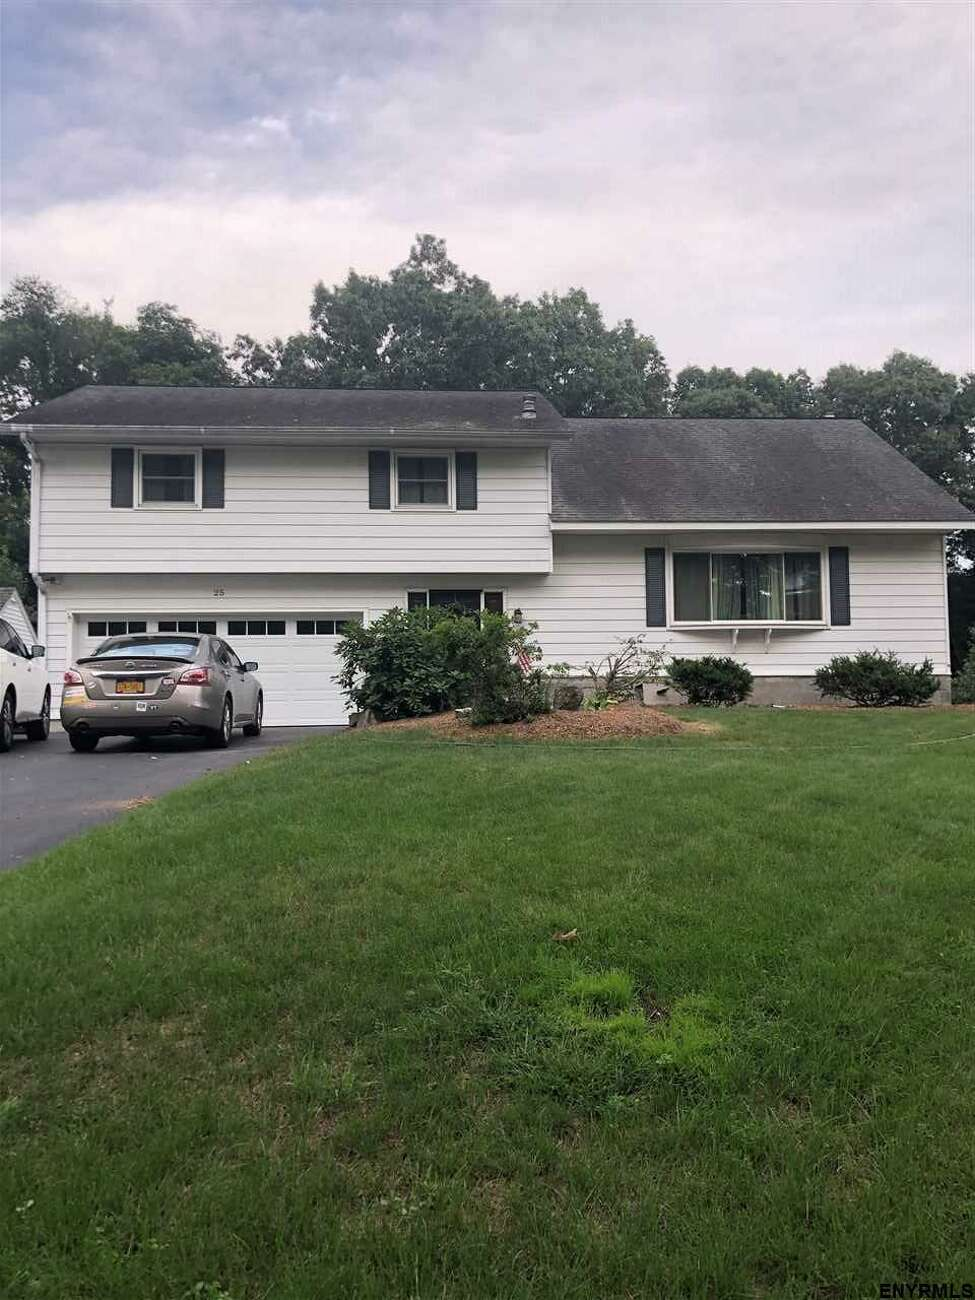 $289,000. 25 Noord Lane, Clifton Park, NY 12019. View the listing.